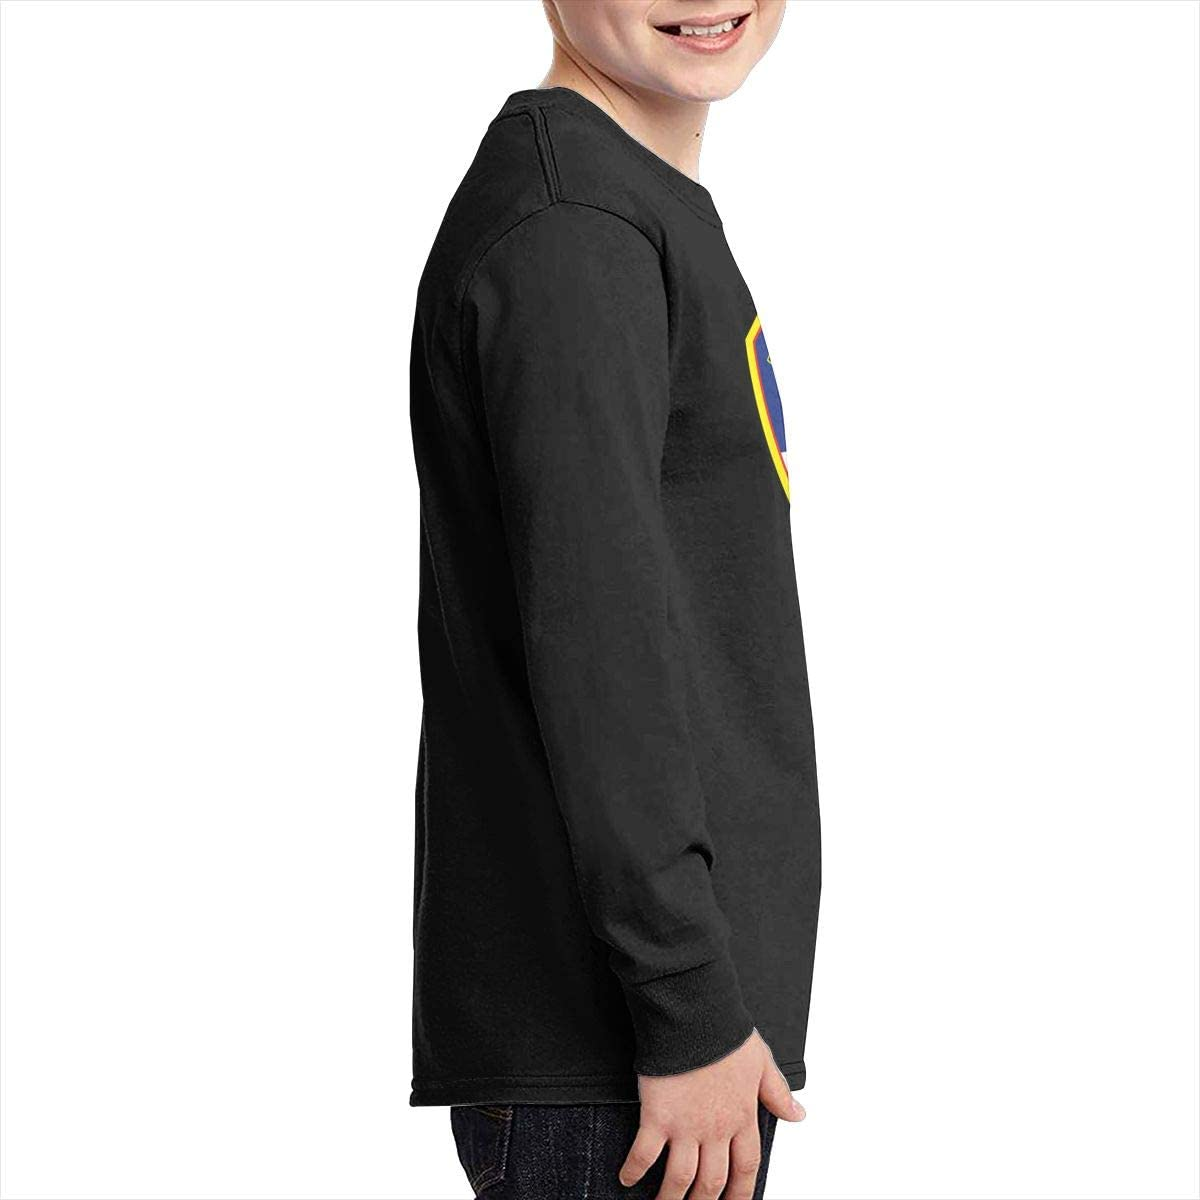 Fire Department New York Youth Boy Girl Athletic Pullover Sweatshirt Casual Shirt